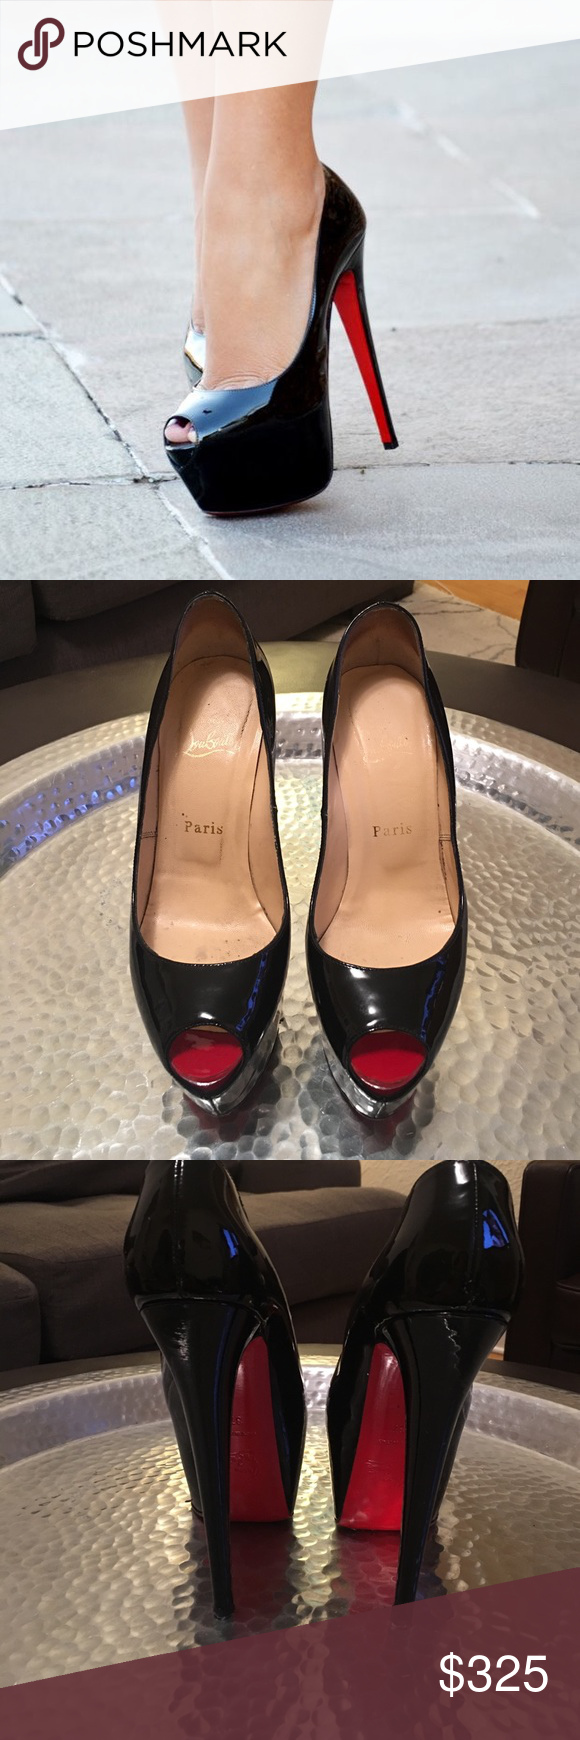 aaf6006f183 ️SALE 💯Christin Louboutin highness peep toe pump In good condition ...